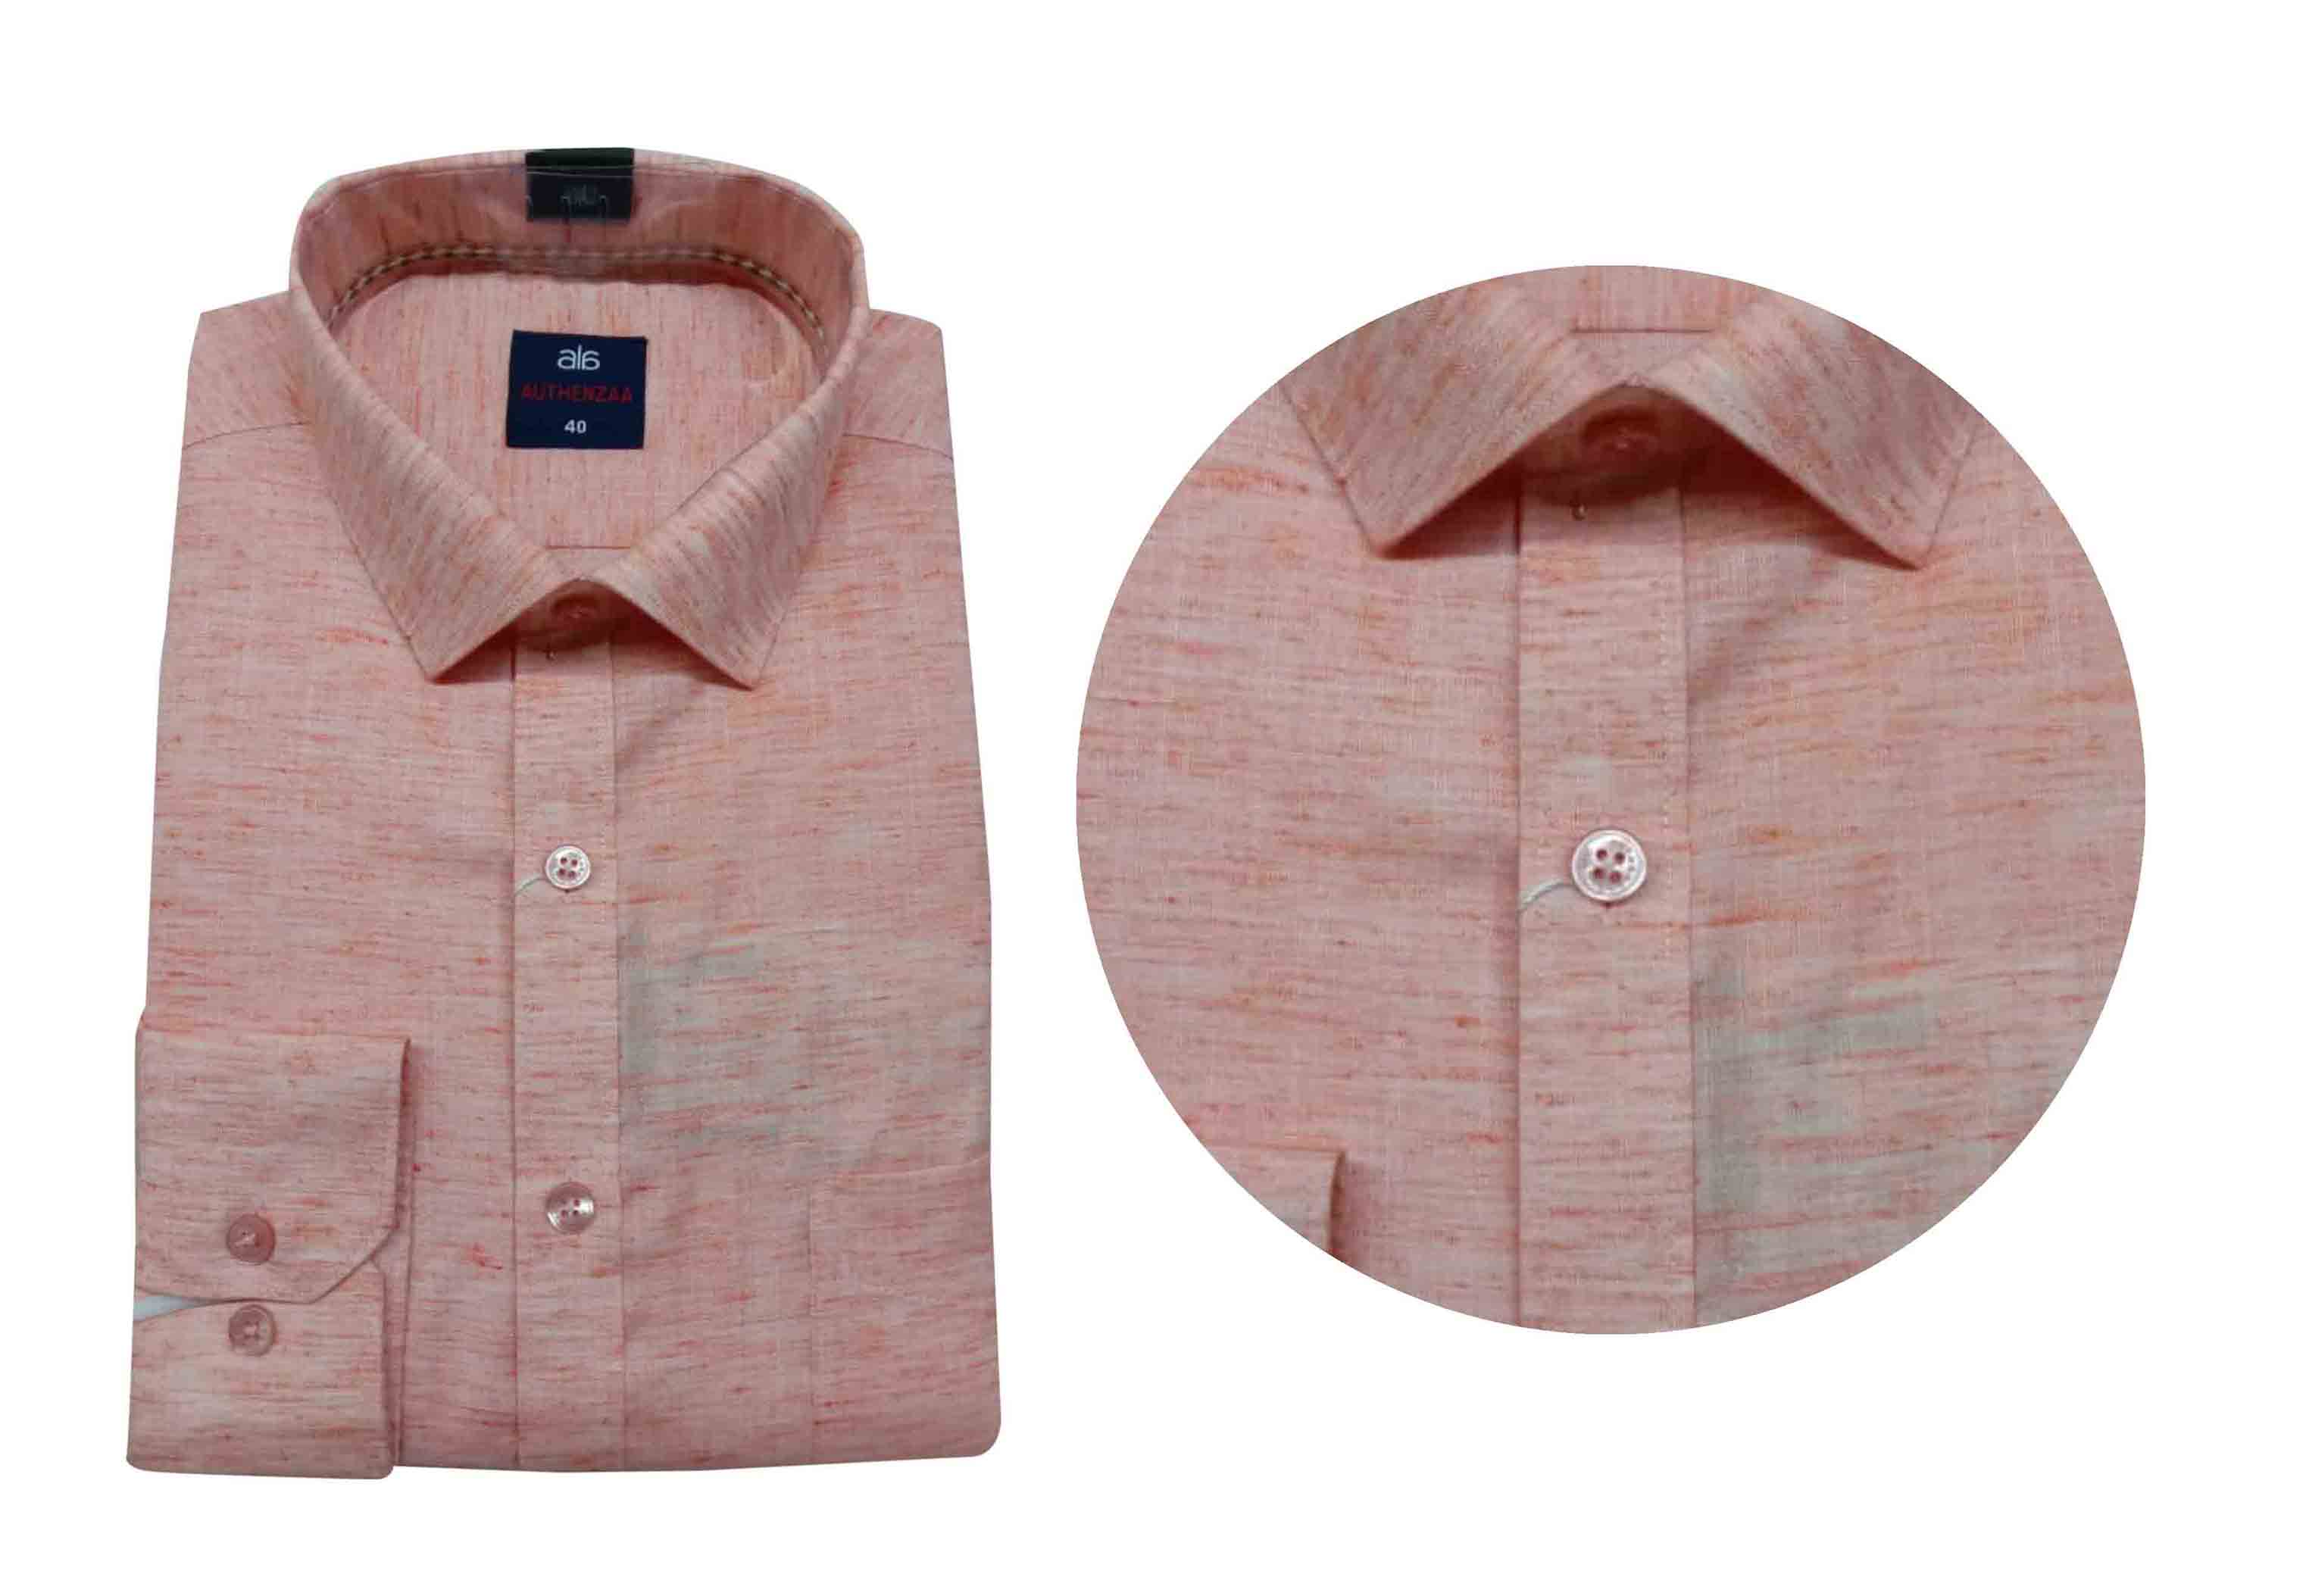 BT WALKMAN 2019-LINEN ORANGE MEN'S FORMAL SHIRT